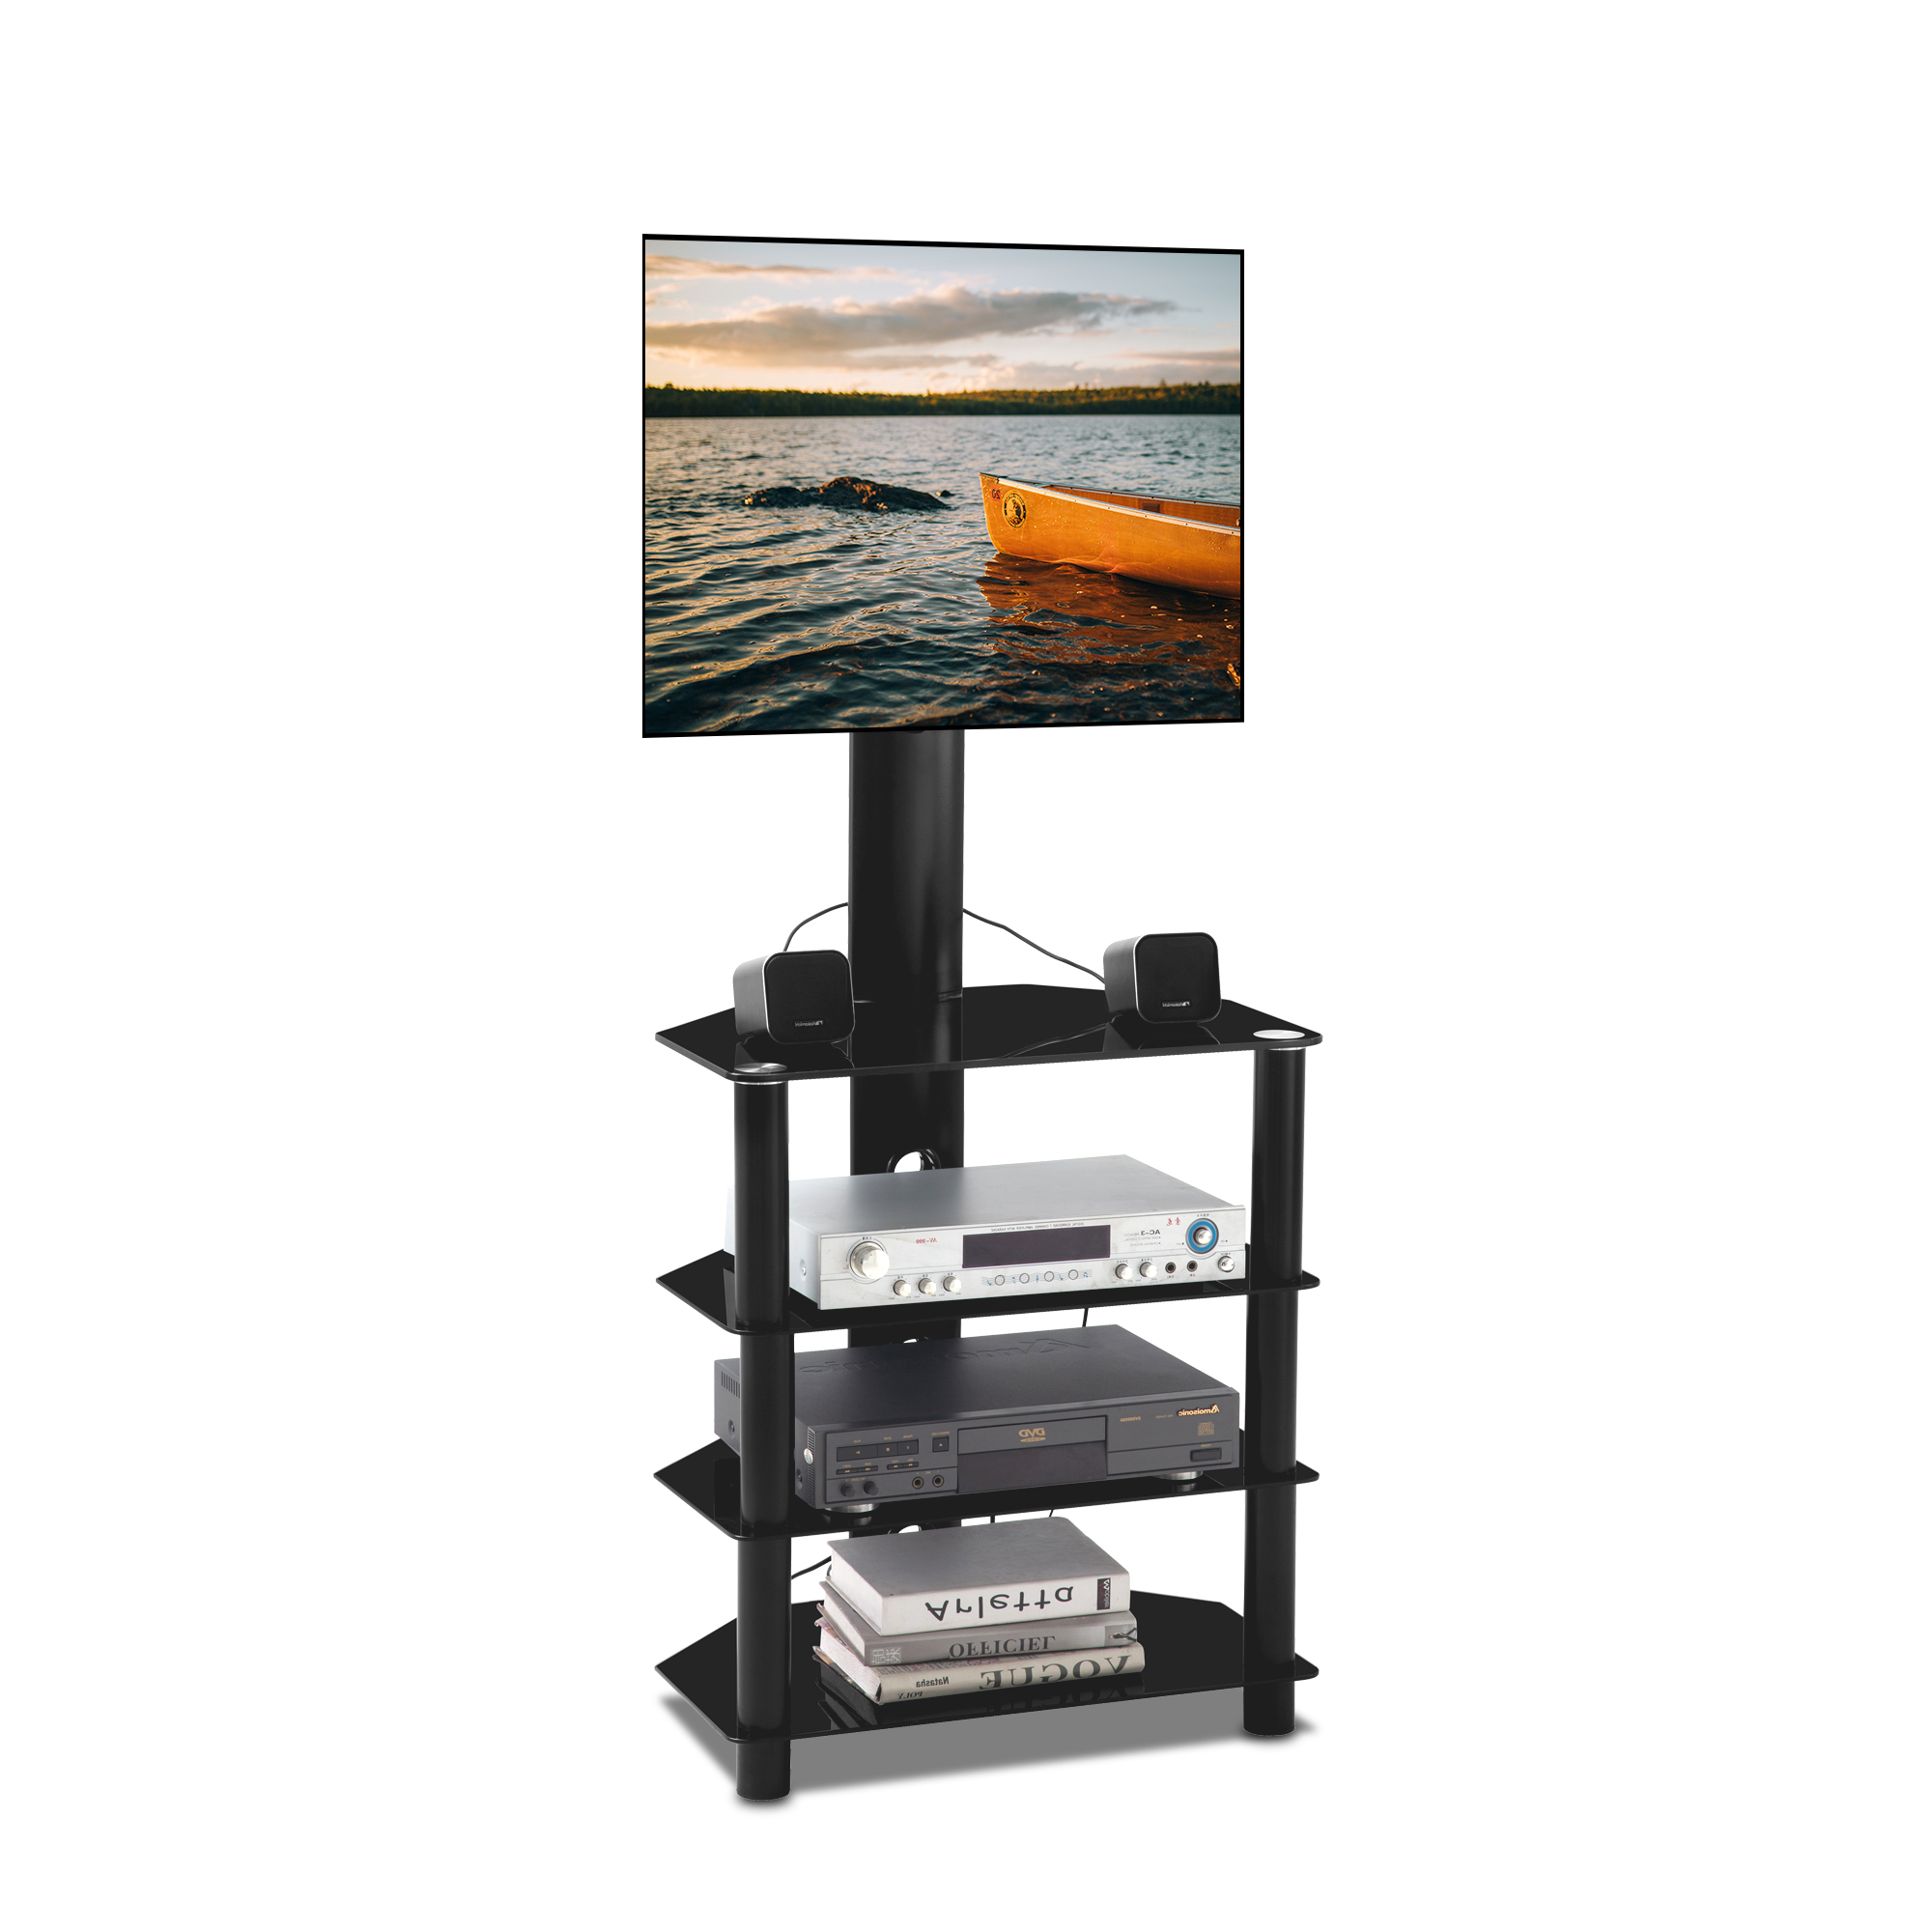 2017 Swivel Floor Tv Stands Height Adjustable With Regard To Tv Stand Base, Swivel Universal Tv Stand, Height And Angle (View 5 of 10)